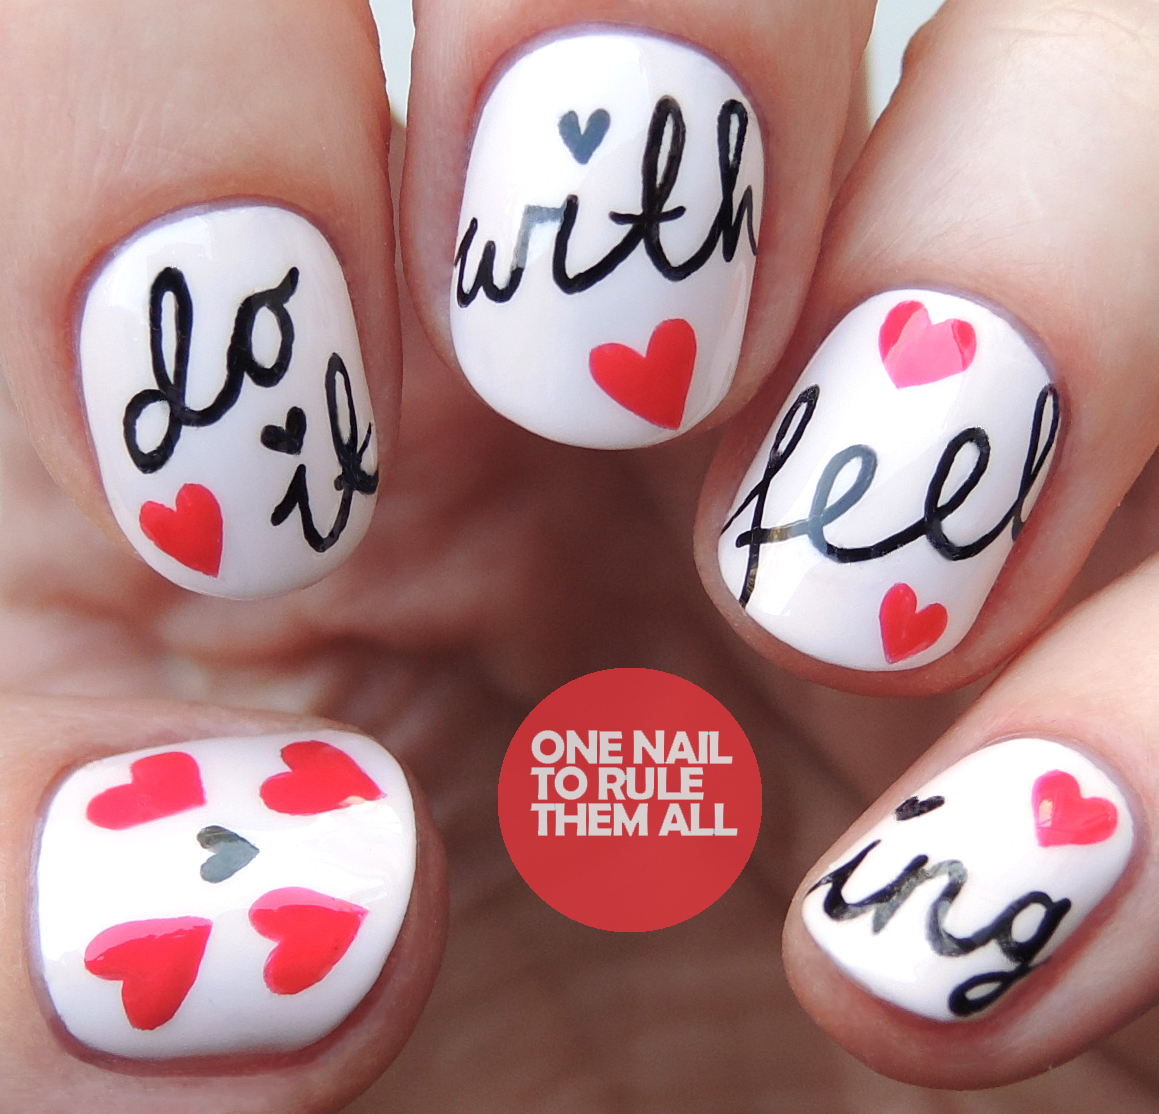 One Nail To Rule Them All: Do It With Feeling